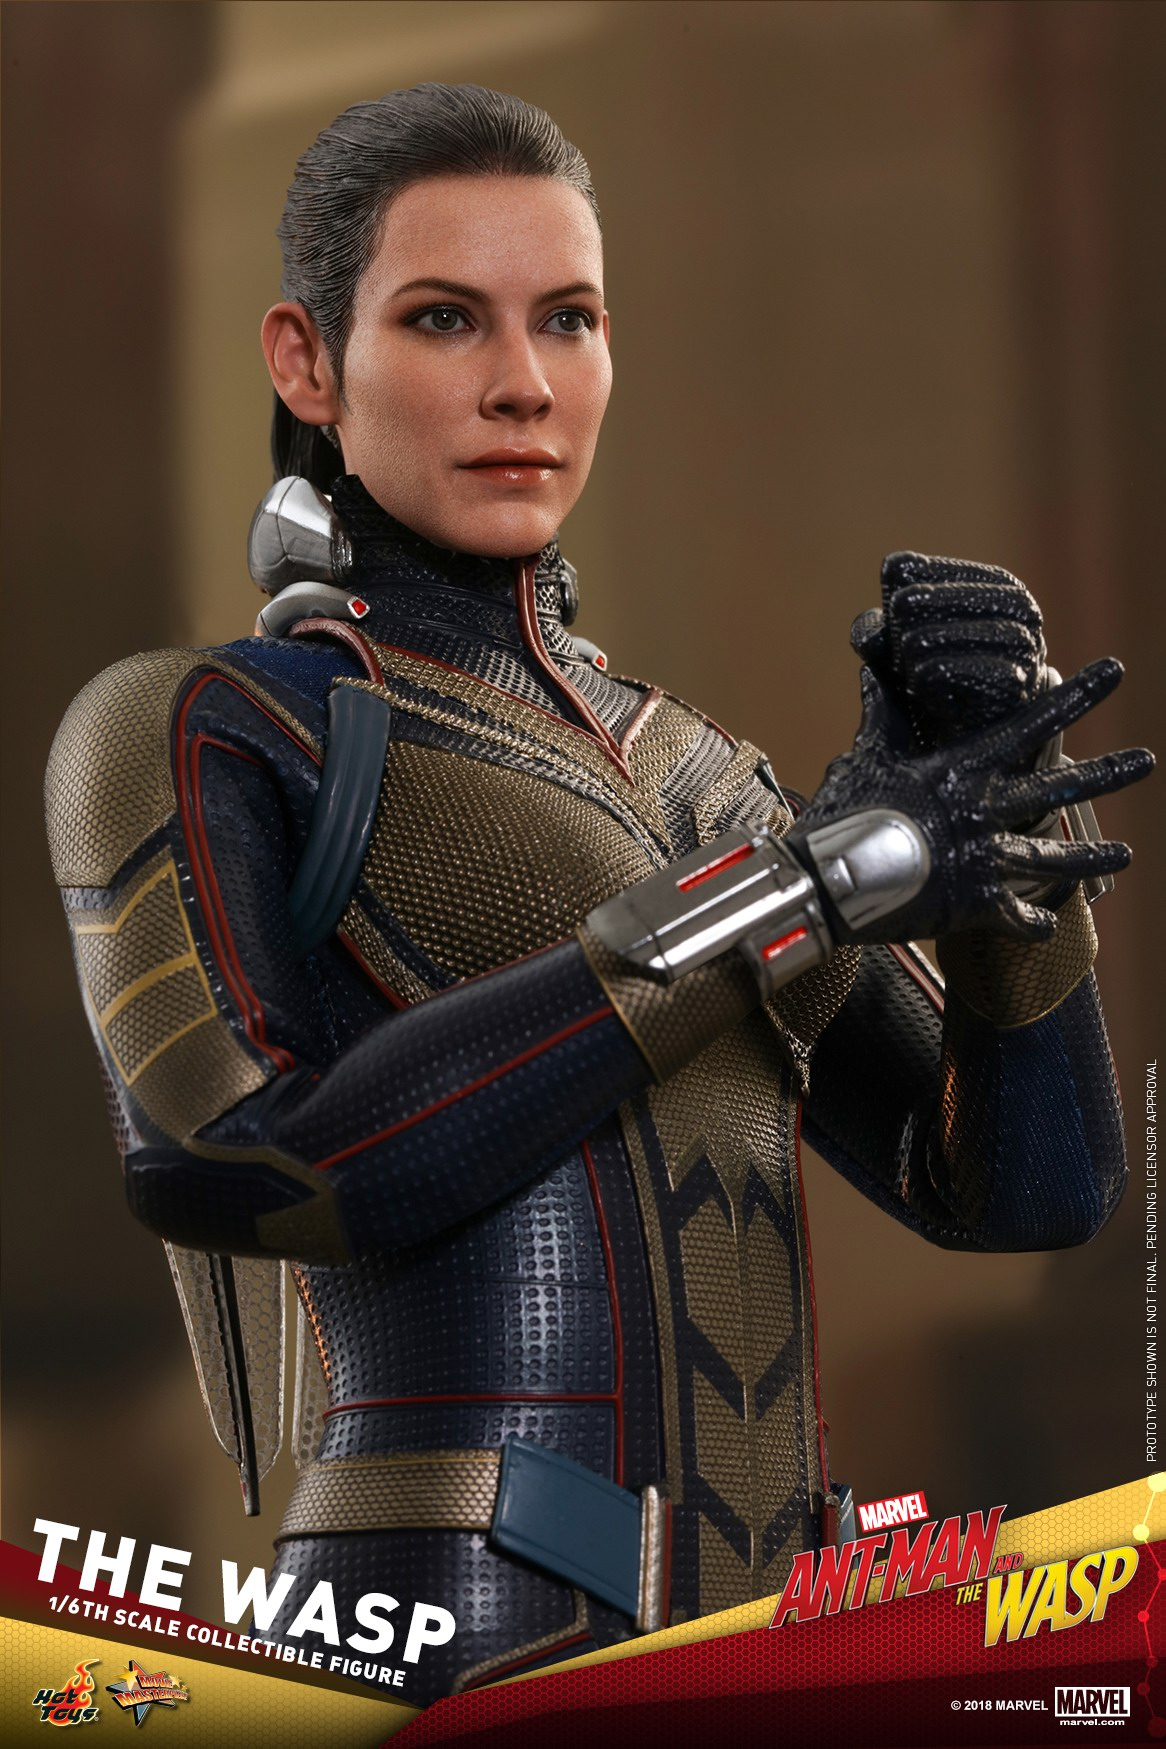 Hot-Toys-Ant-Man-and-The-Wasp-The-Wasp-Collectible-Figure_PR21.jpg